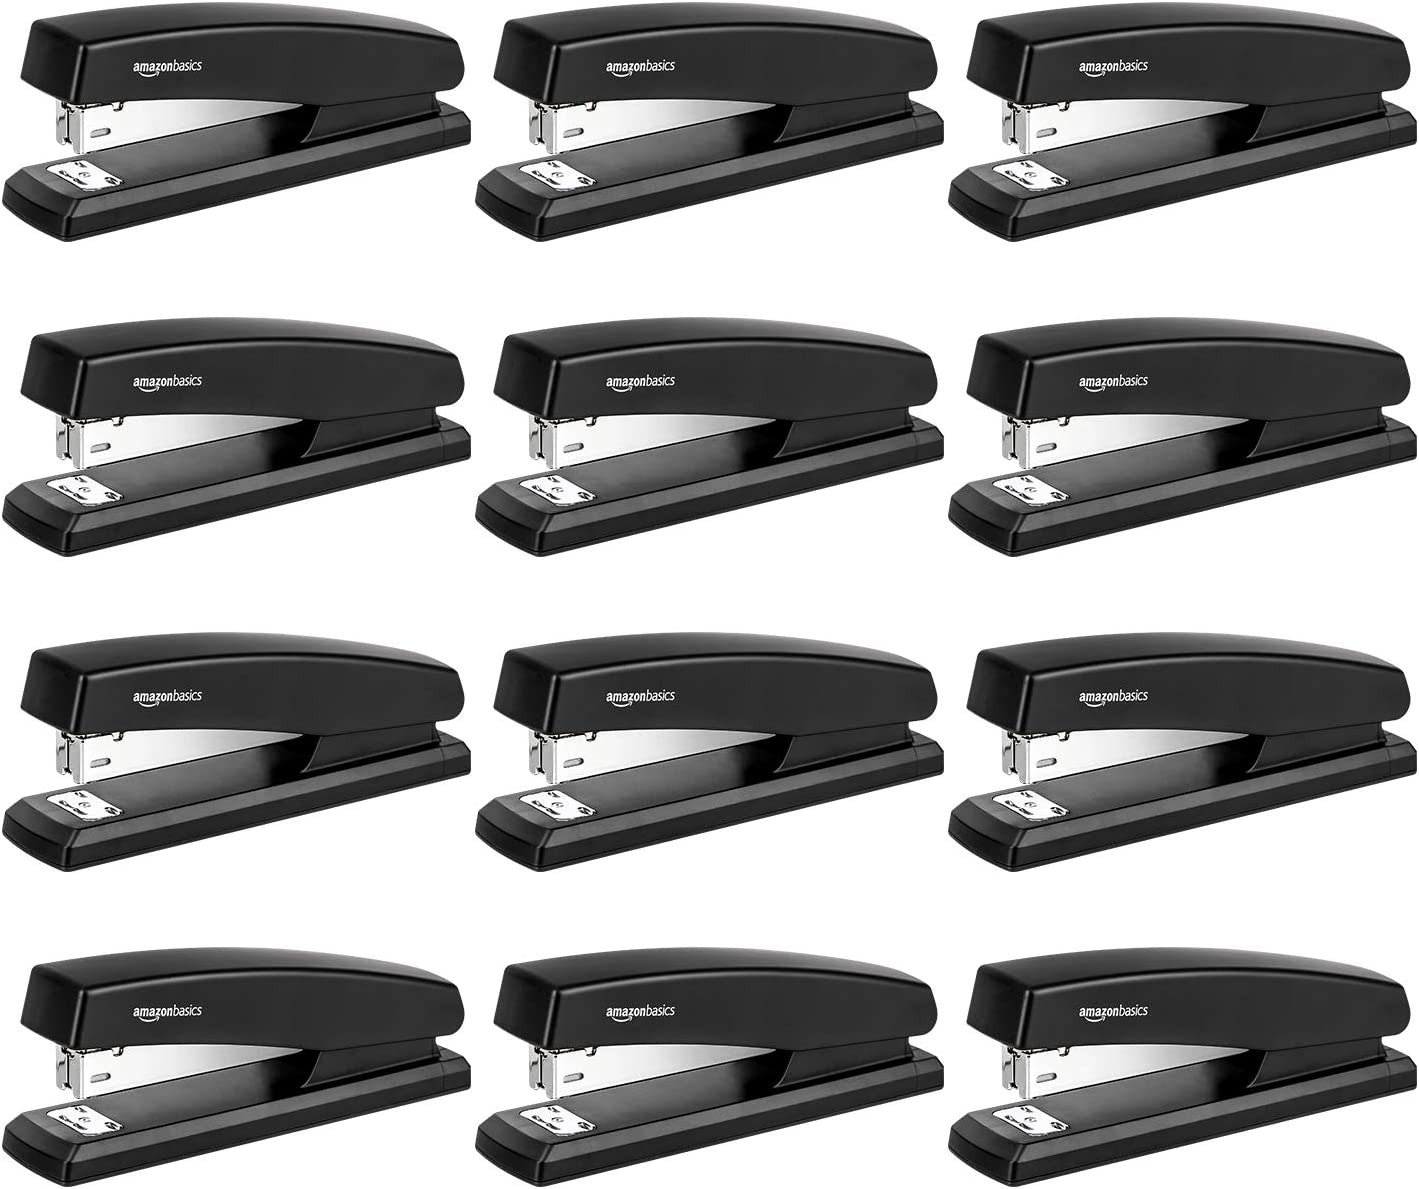 AmazonBasics 10-Sheet Capacity, Non-Slip, Office Stapler with 1000 Staples, Black - Pack of 12